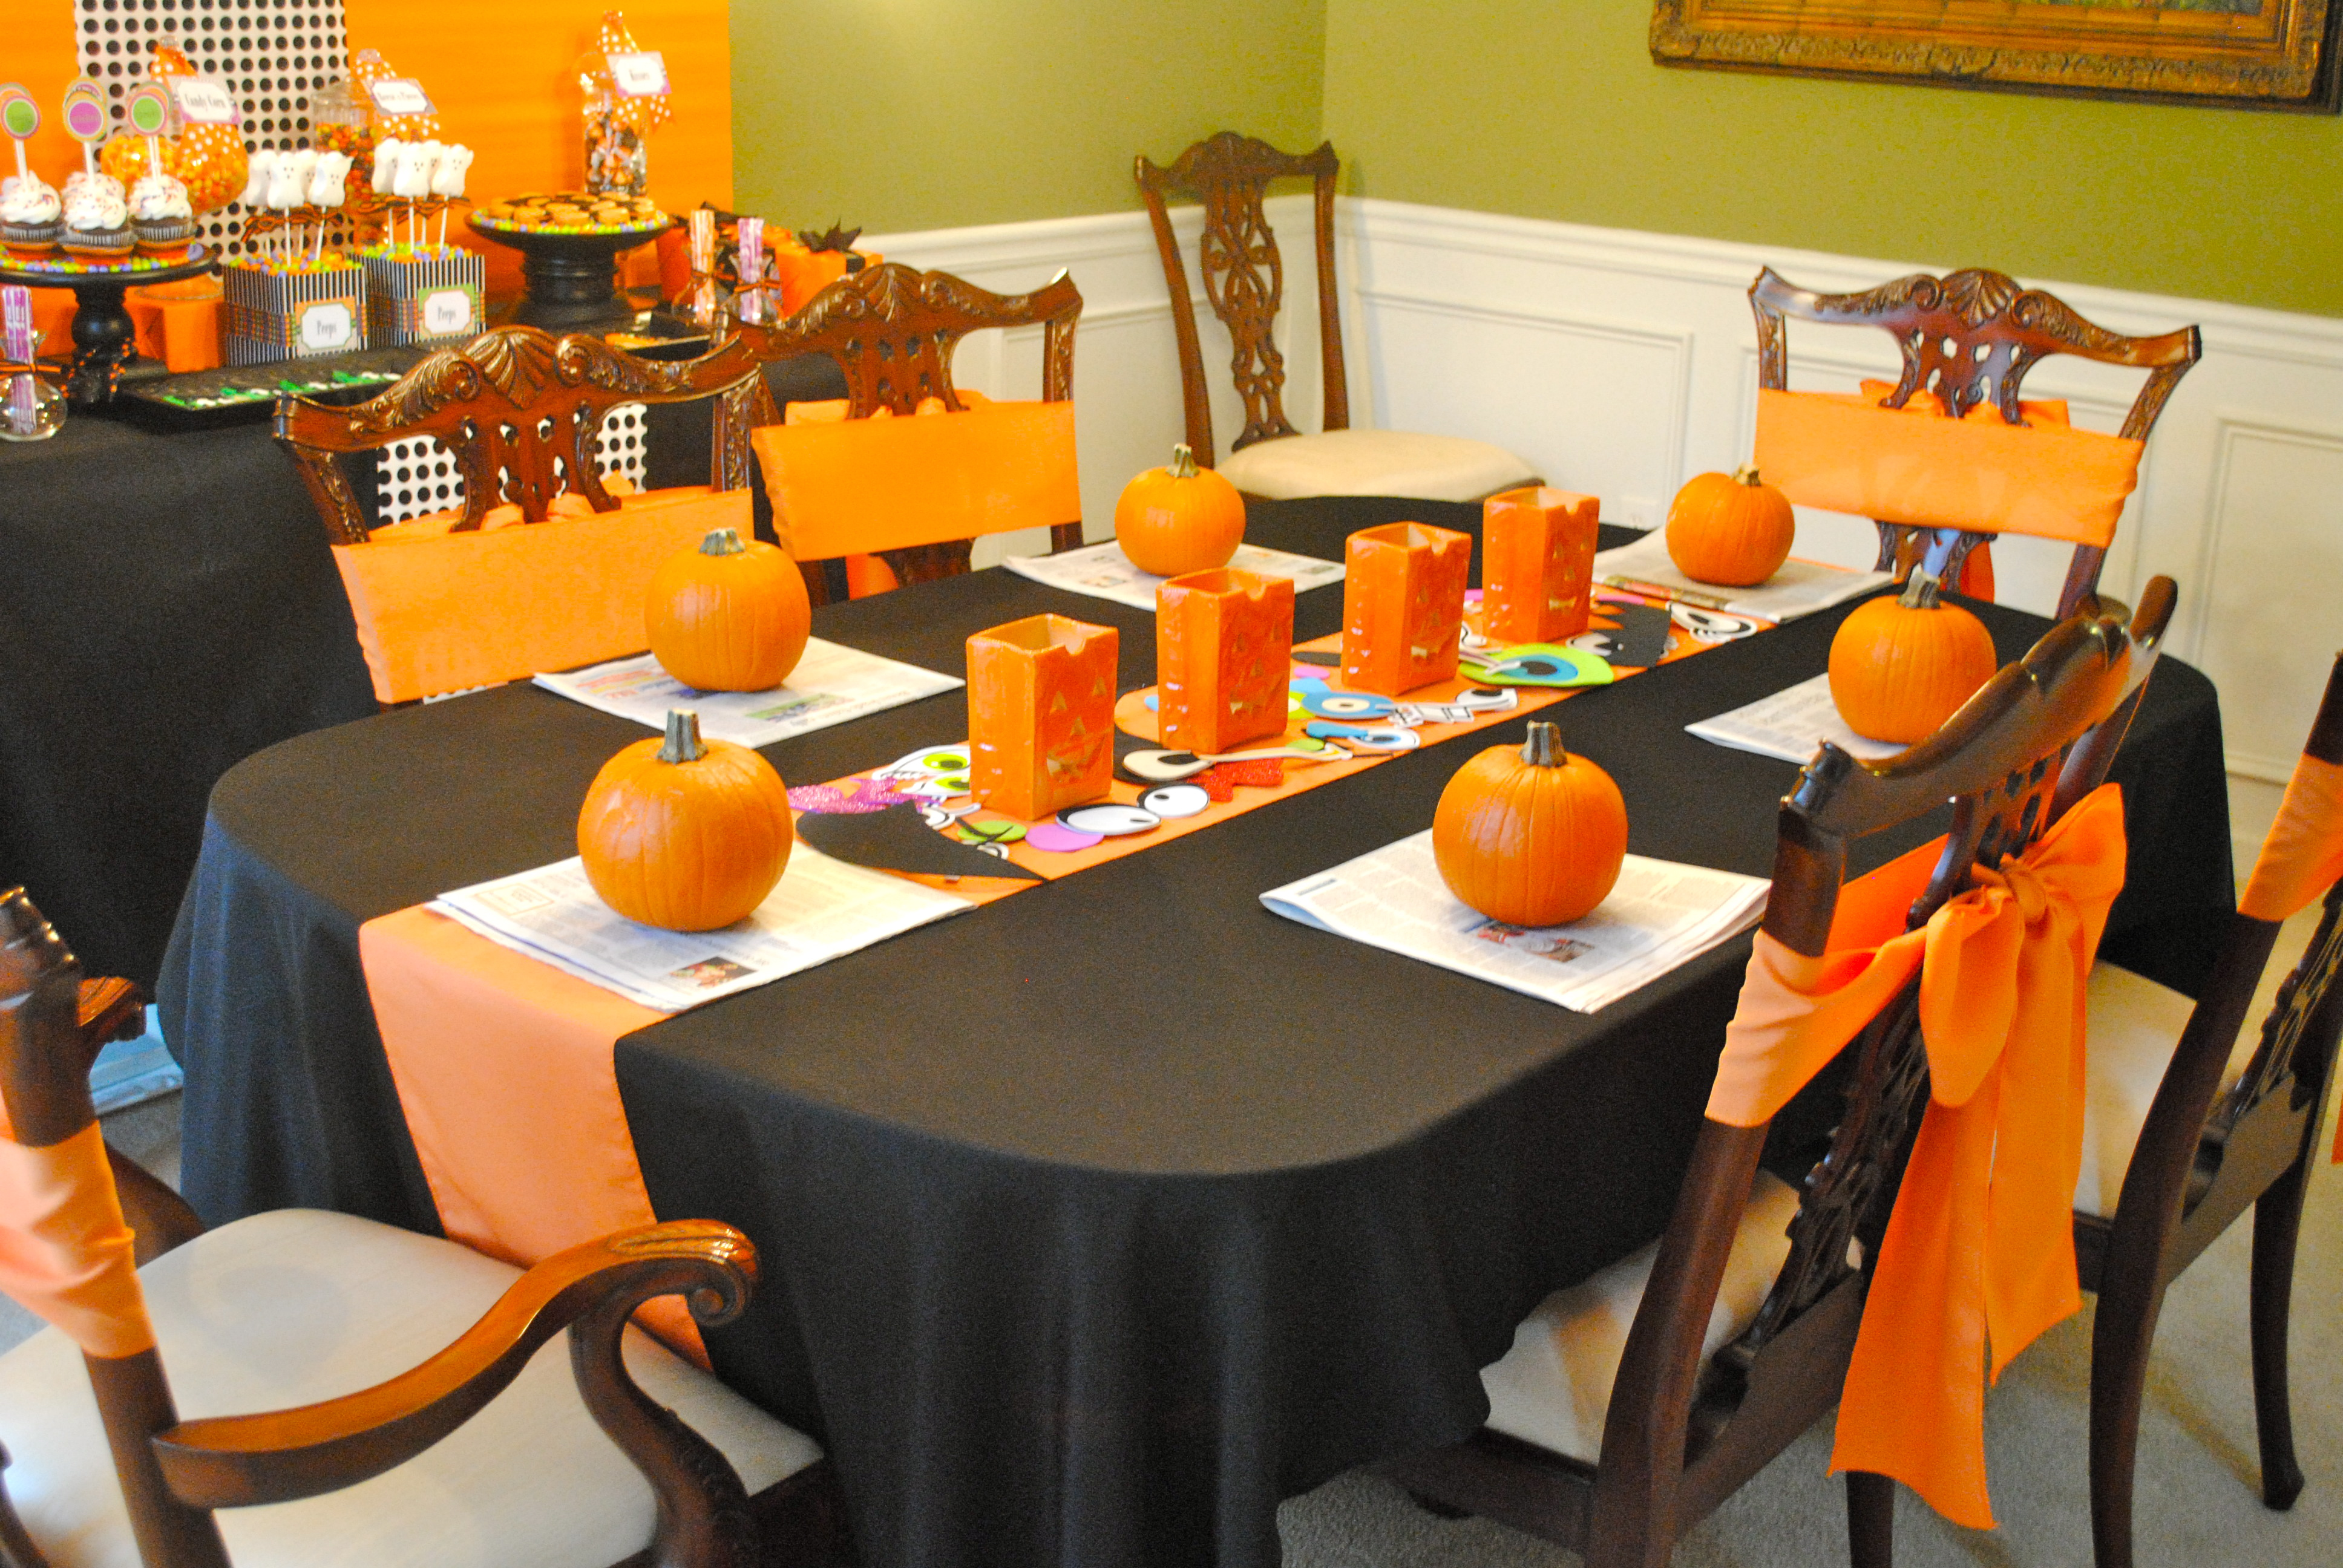 Halloween tablecloths - Welcome